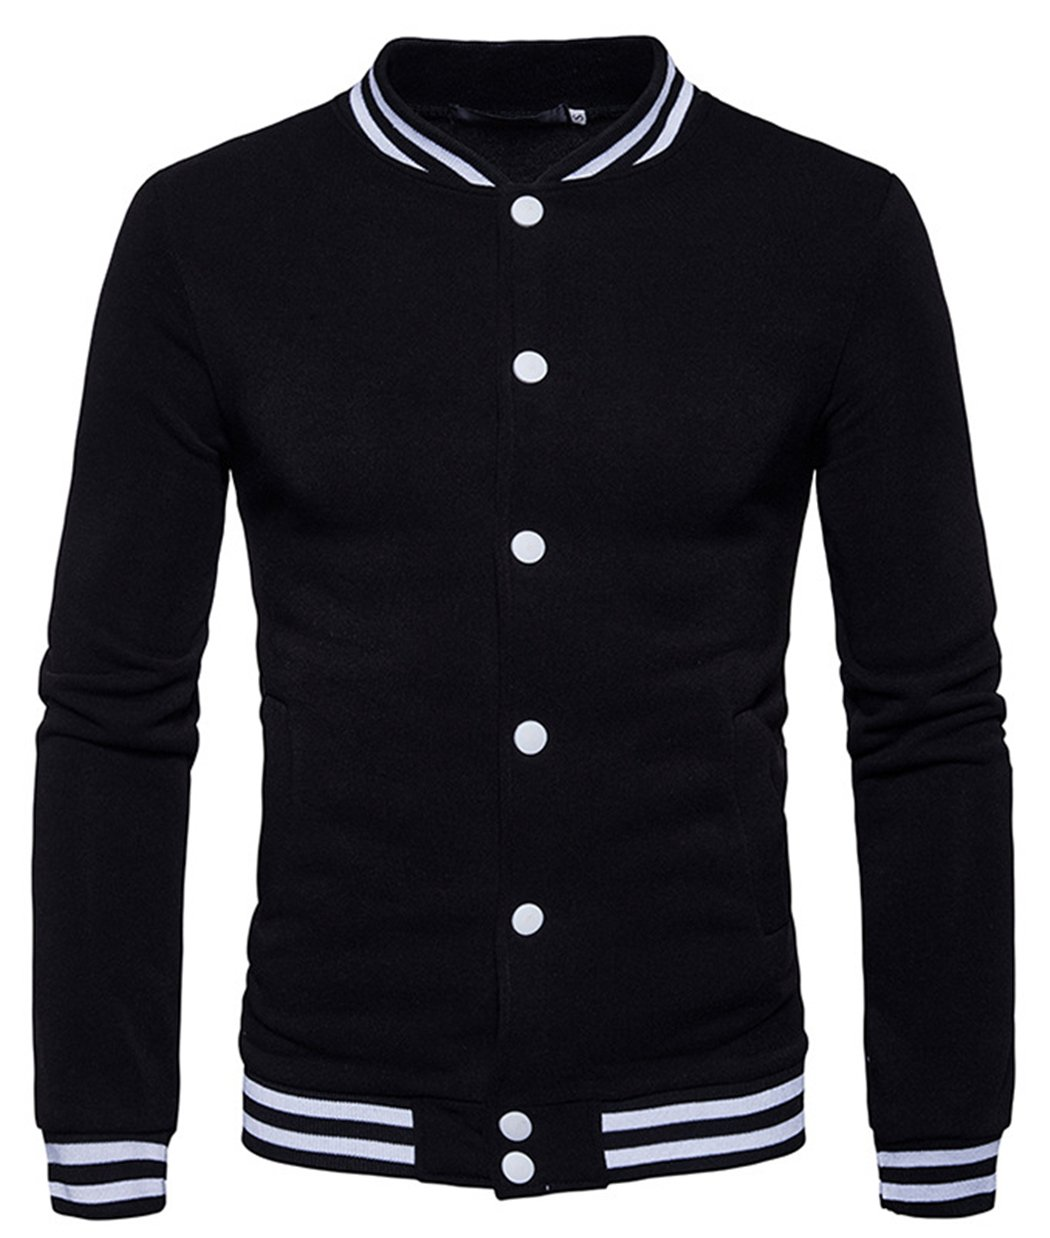 HOP FASHION Mens Casual Long Sleeve Baseball Collar Button Down Varsity Jacket Elastic Hem Lightweight Sport Cotton Coat with Pockets HOPM185-Black-L by HOP FASHION